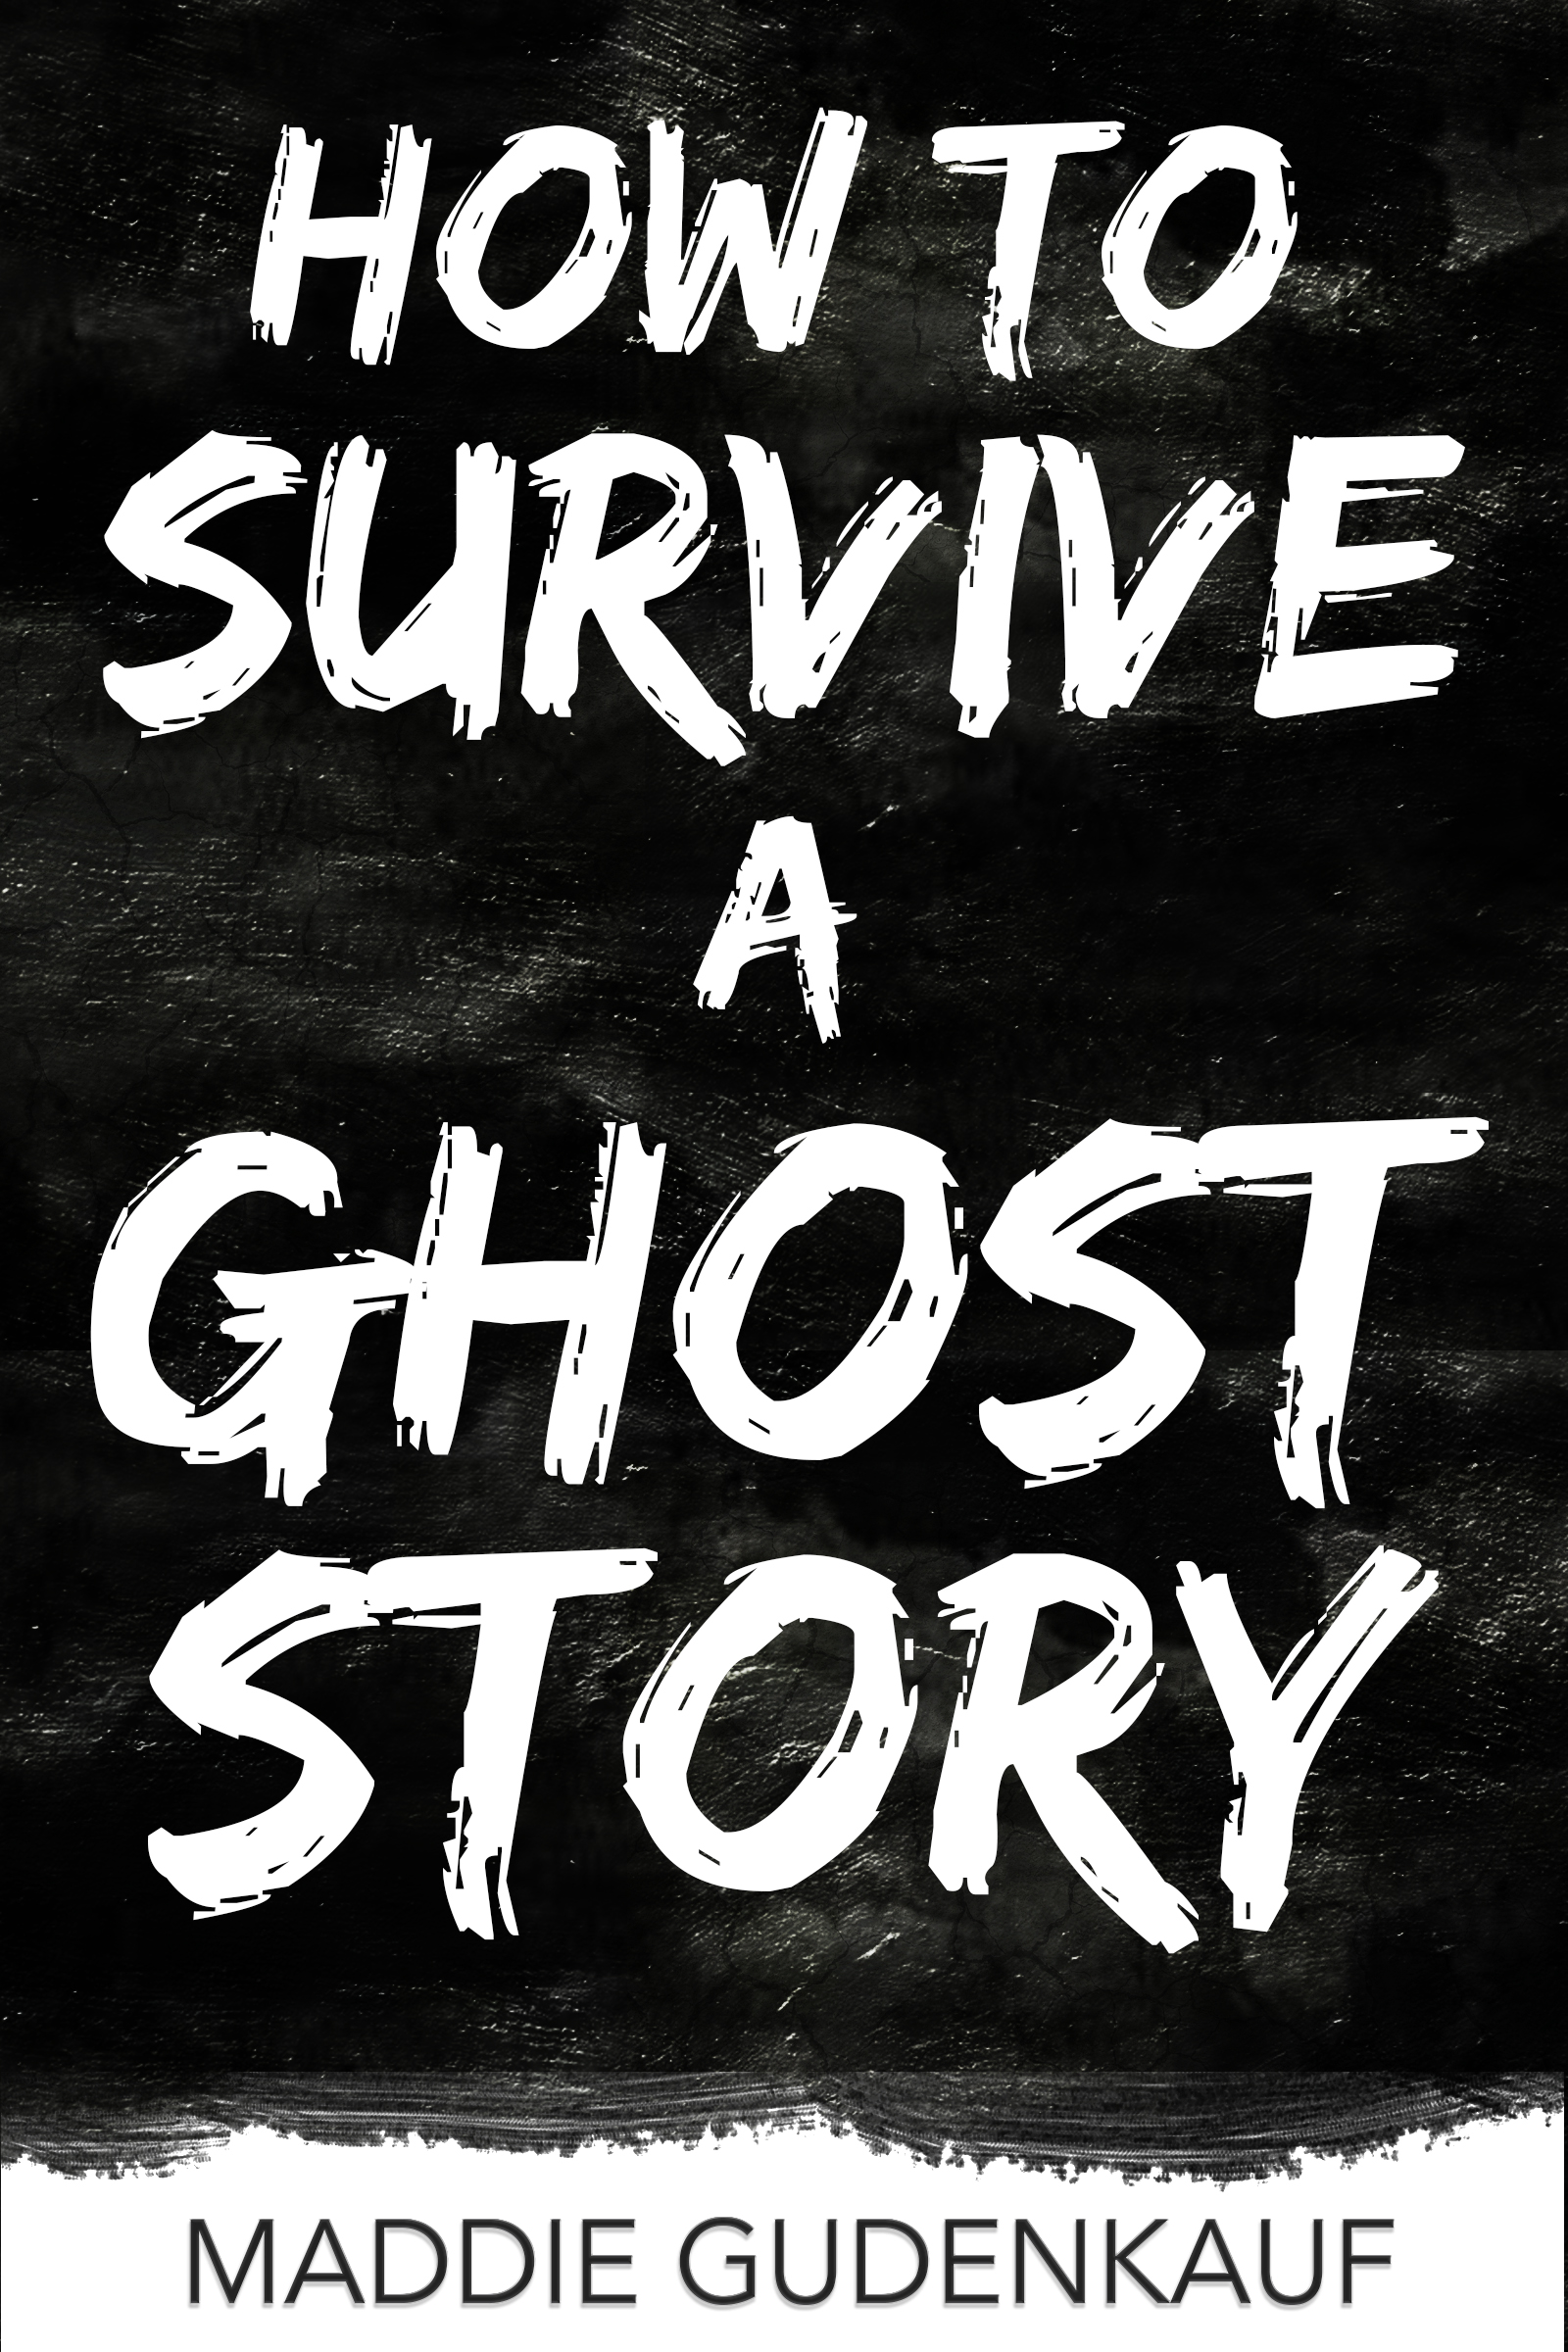 How to Survive a Ghost Story is Maddie Gudenkauf's first novel and is available for purchase through  Amazon ,  Barnes & Noble ,  Old Firehouse Books in Fort Collins ,  Tattered Covers in Denver , and  anywhere e-books are sold .